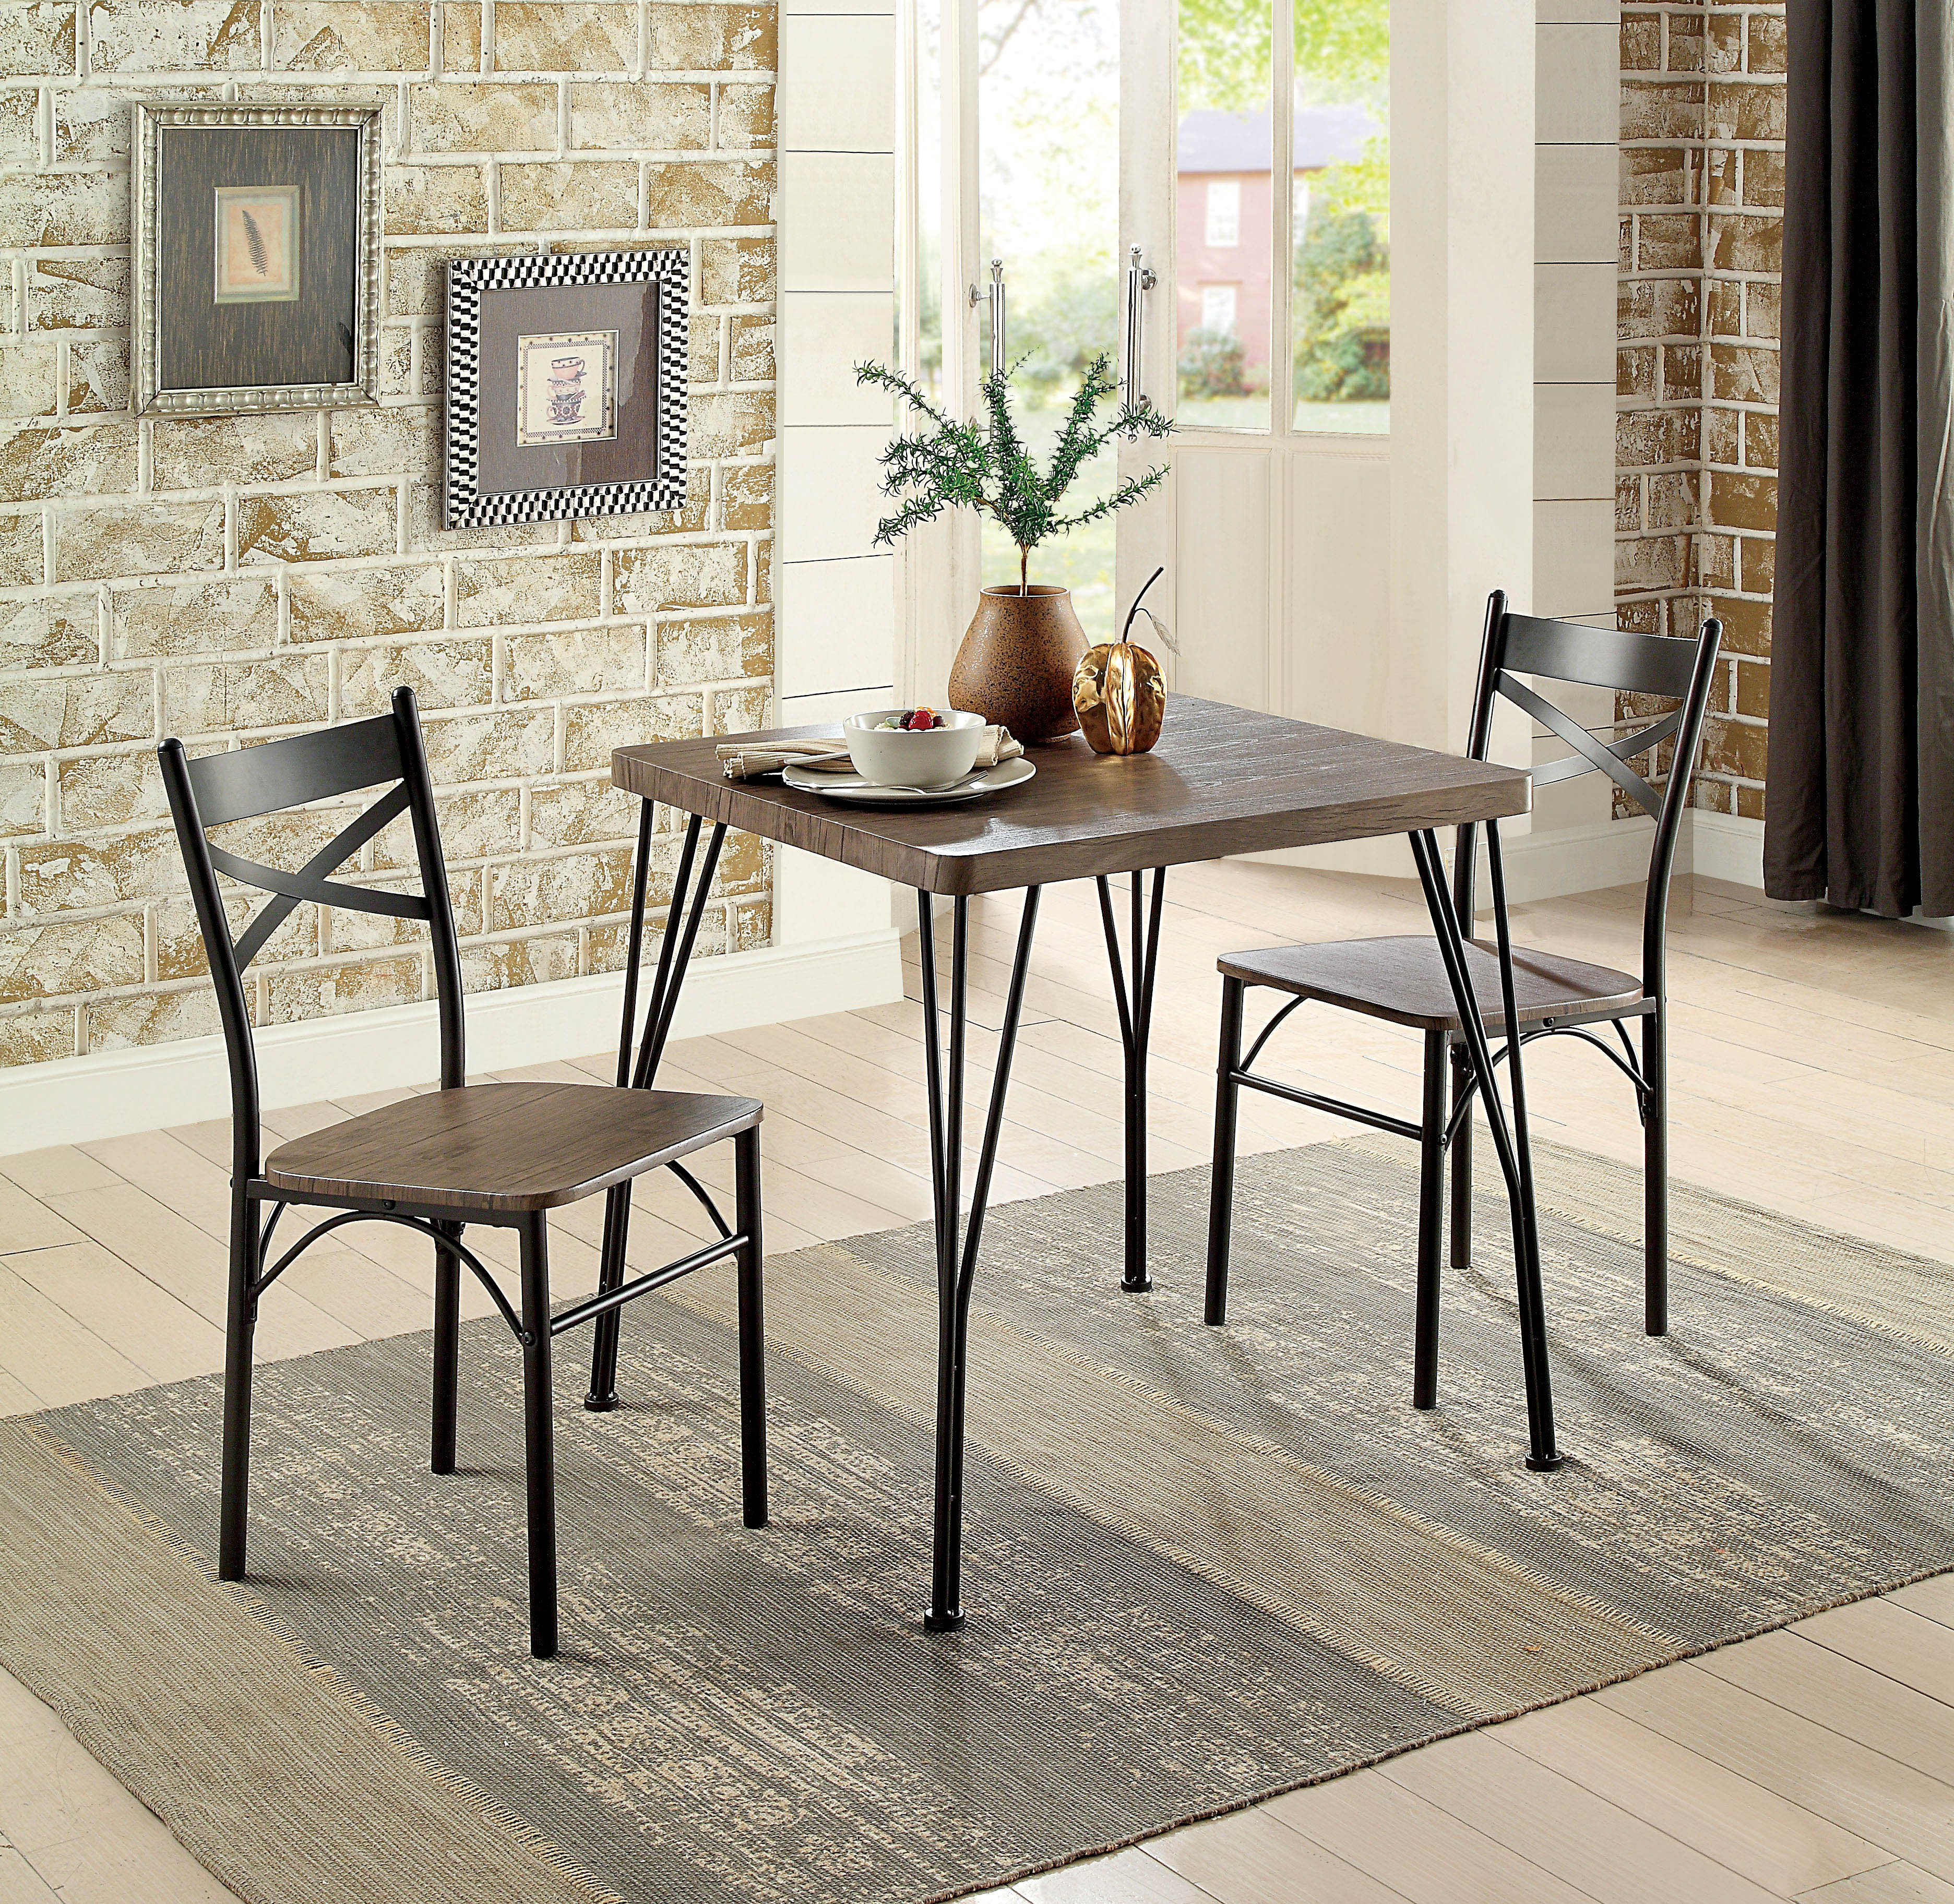 Guertin 3 Piece Dining Set With Preferred Frida 3 Piece Dining Table Sets (View 5 of 20)